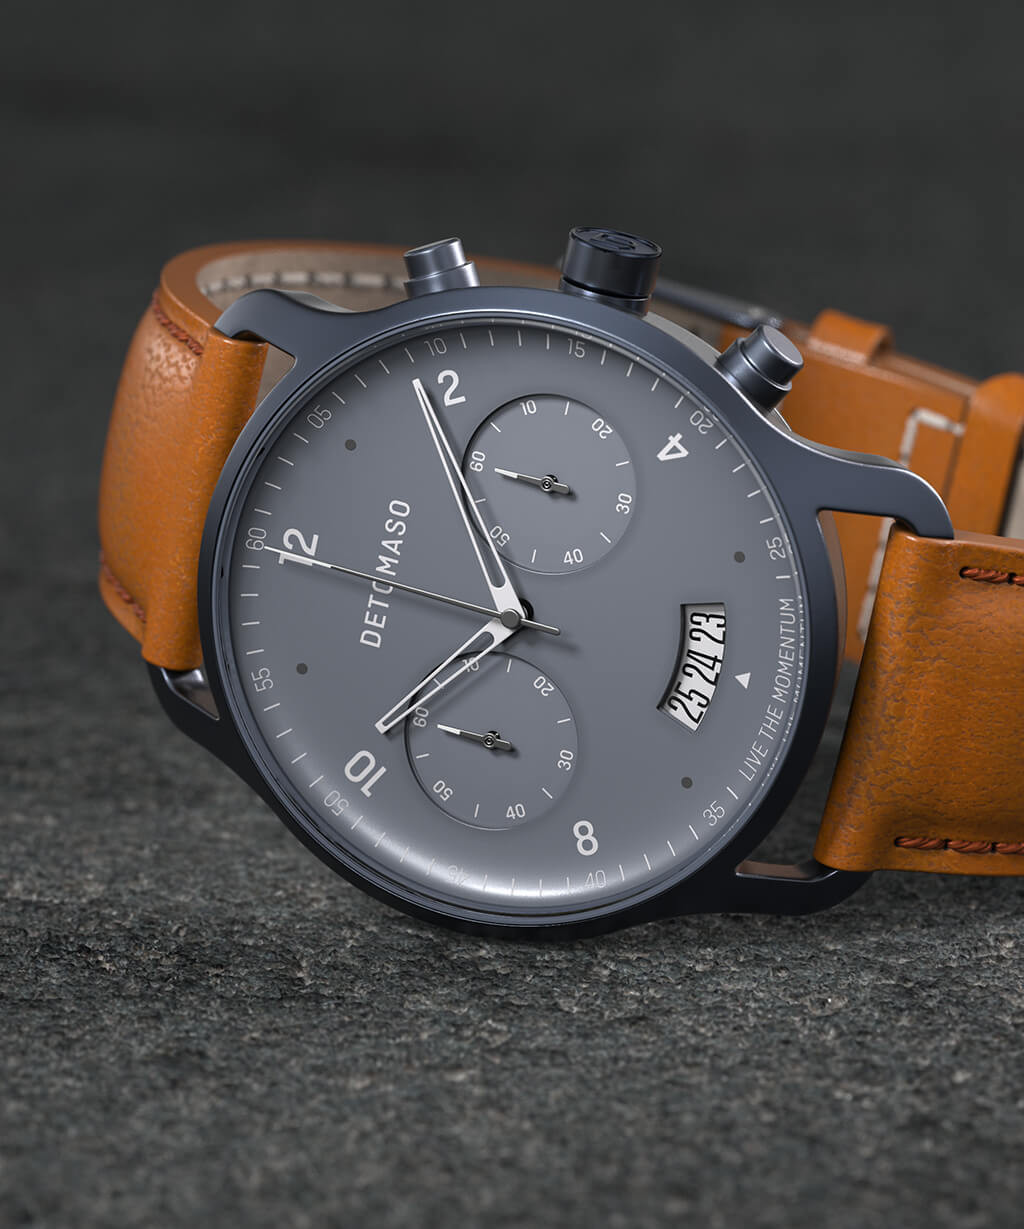 SORPASSO CHRONOGRAPH BLUE - LEATHER STRAP BROWN